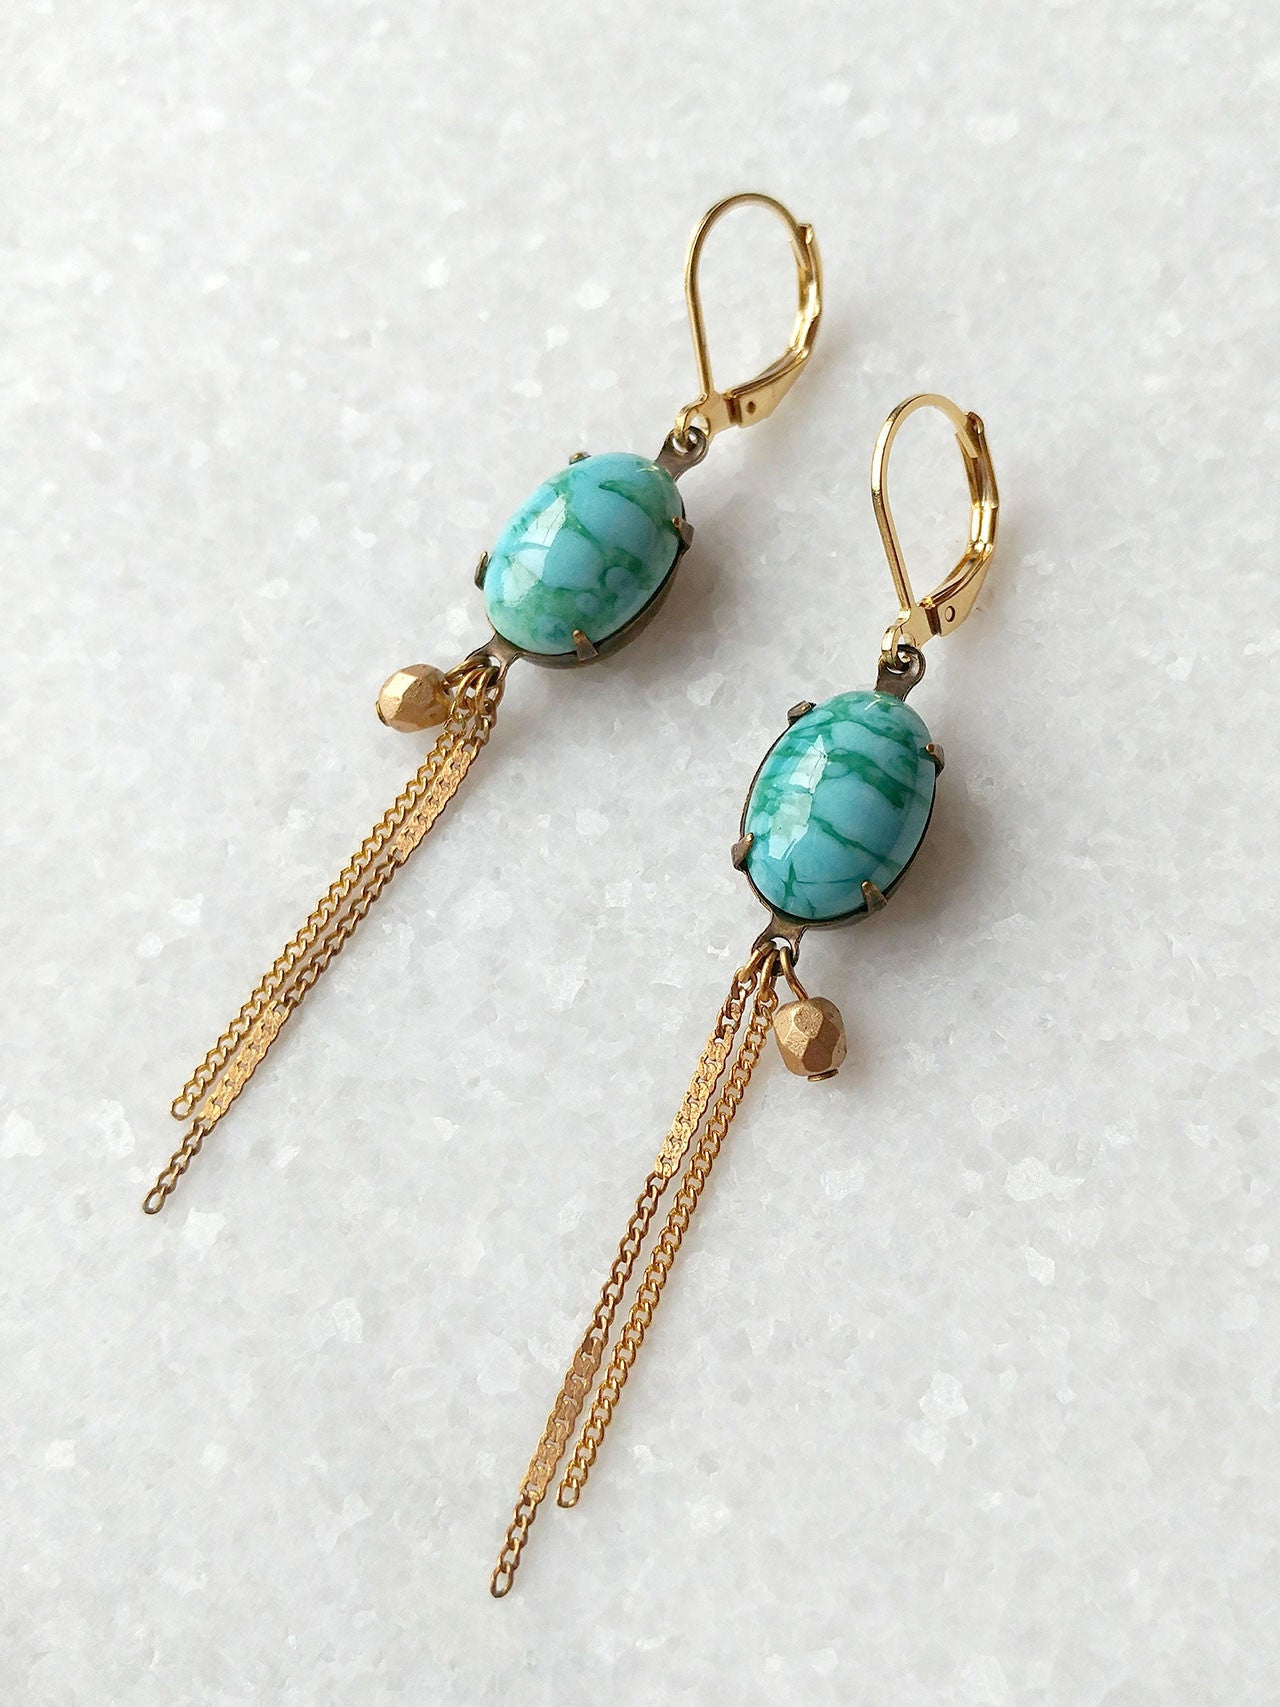 Fawcet Earrings in turquoise (SD1279)